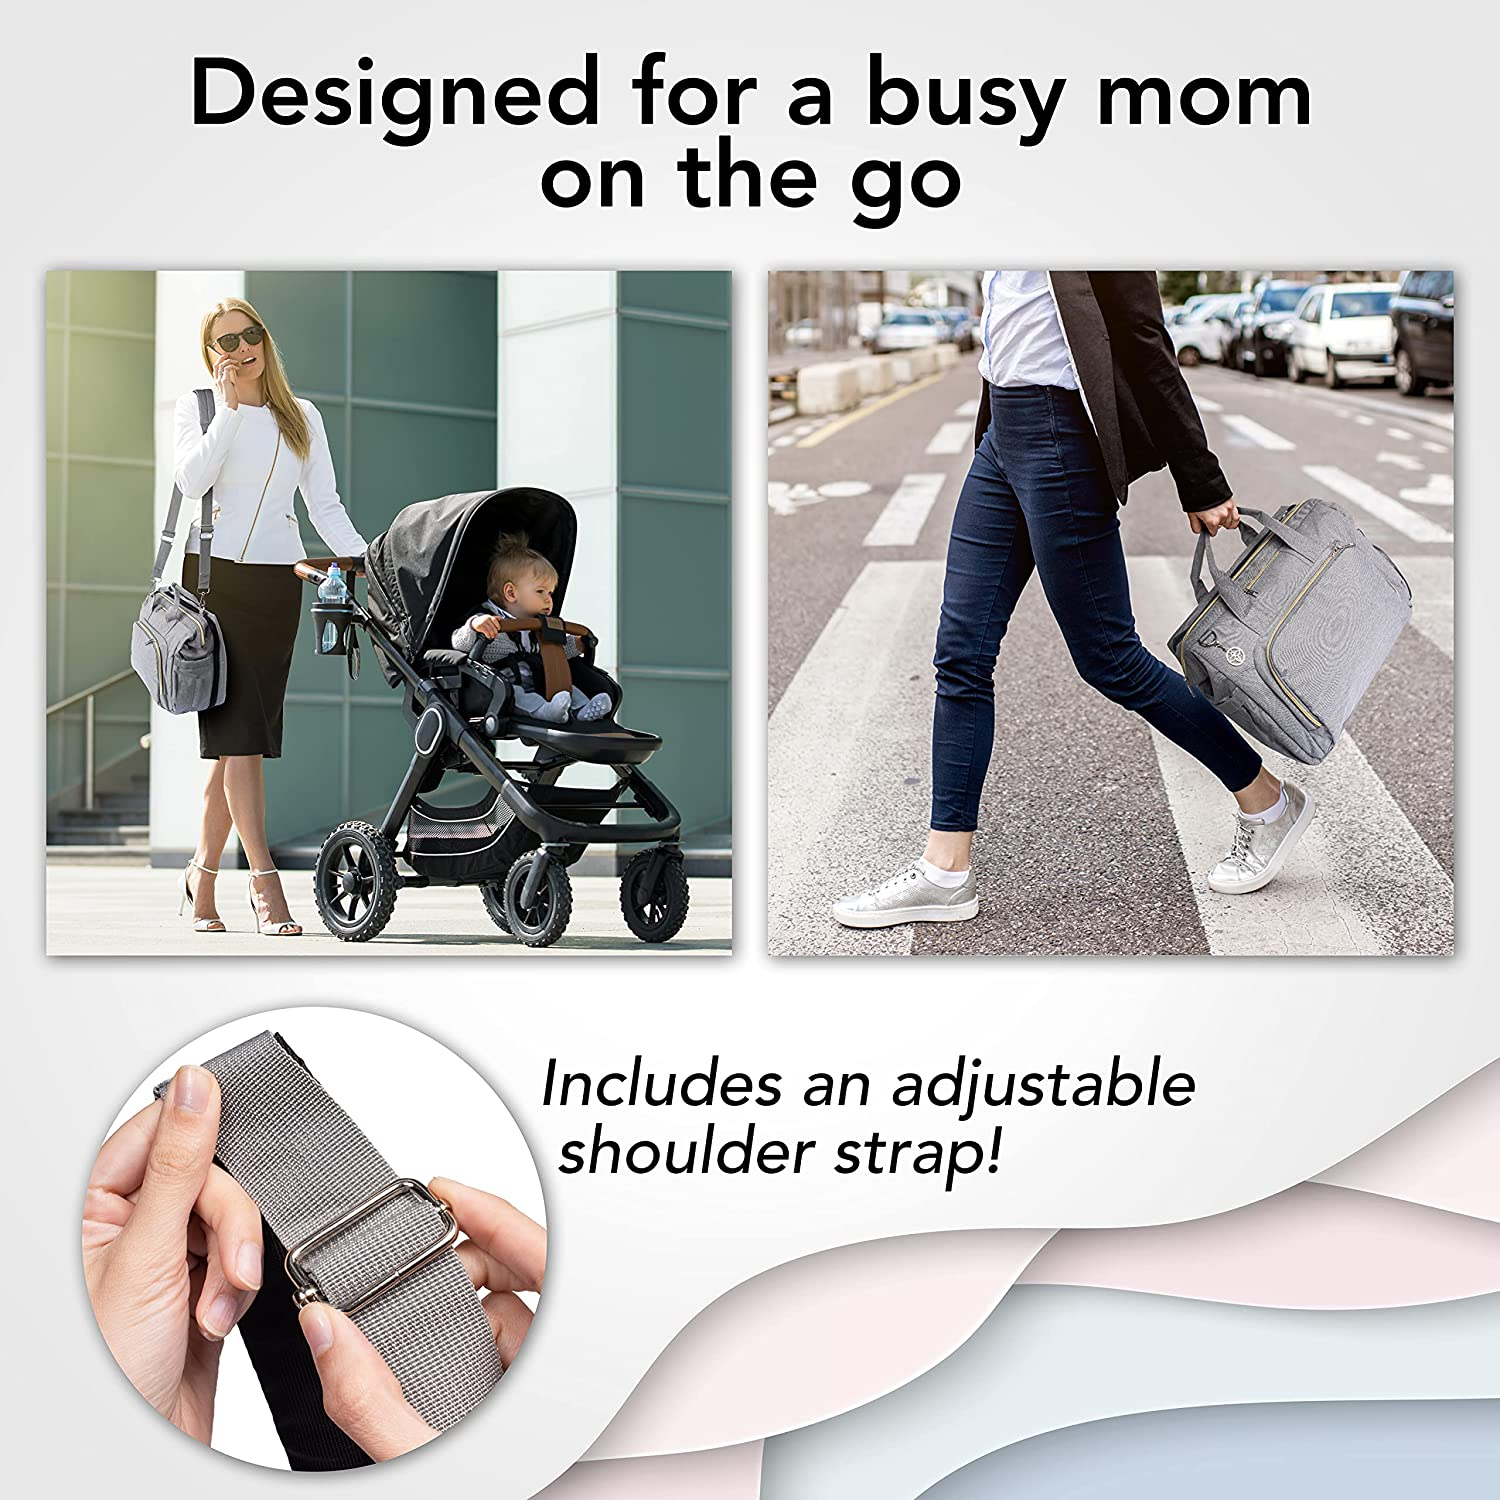 Baby Diaper Bag with Changing Station - Waterproof, Large Capacity - Tote Travel Baby Bag with Bassinet and Changing pad for Boys and Girls, USB Port, Grey - Smart Companion for Mom and Dad